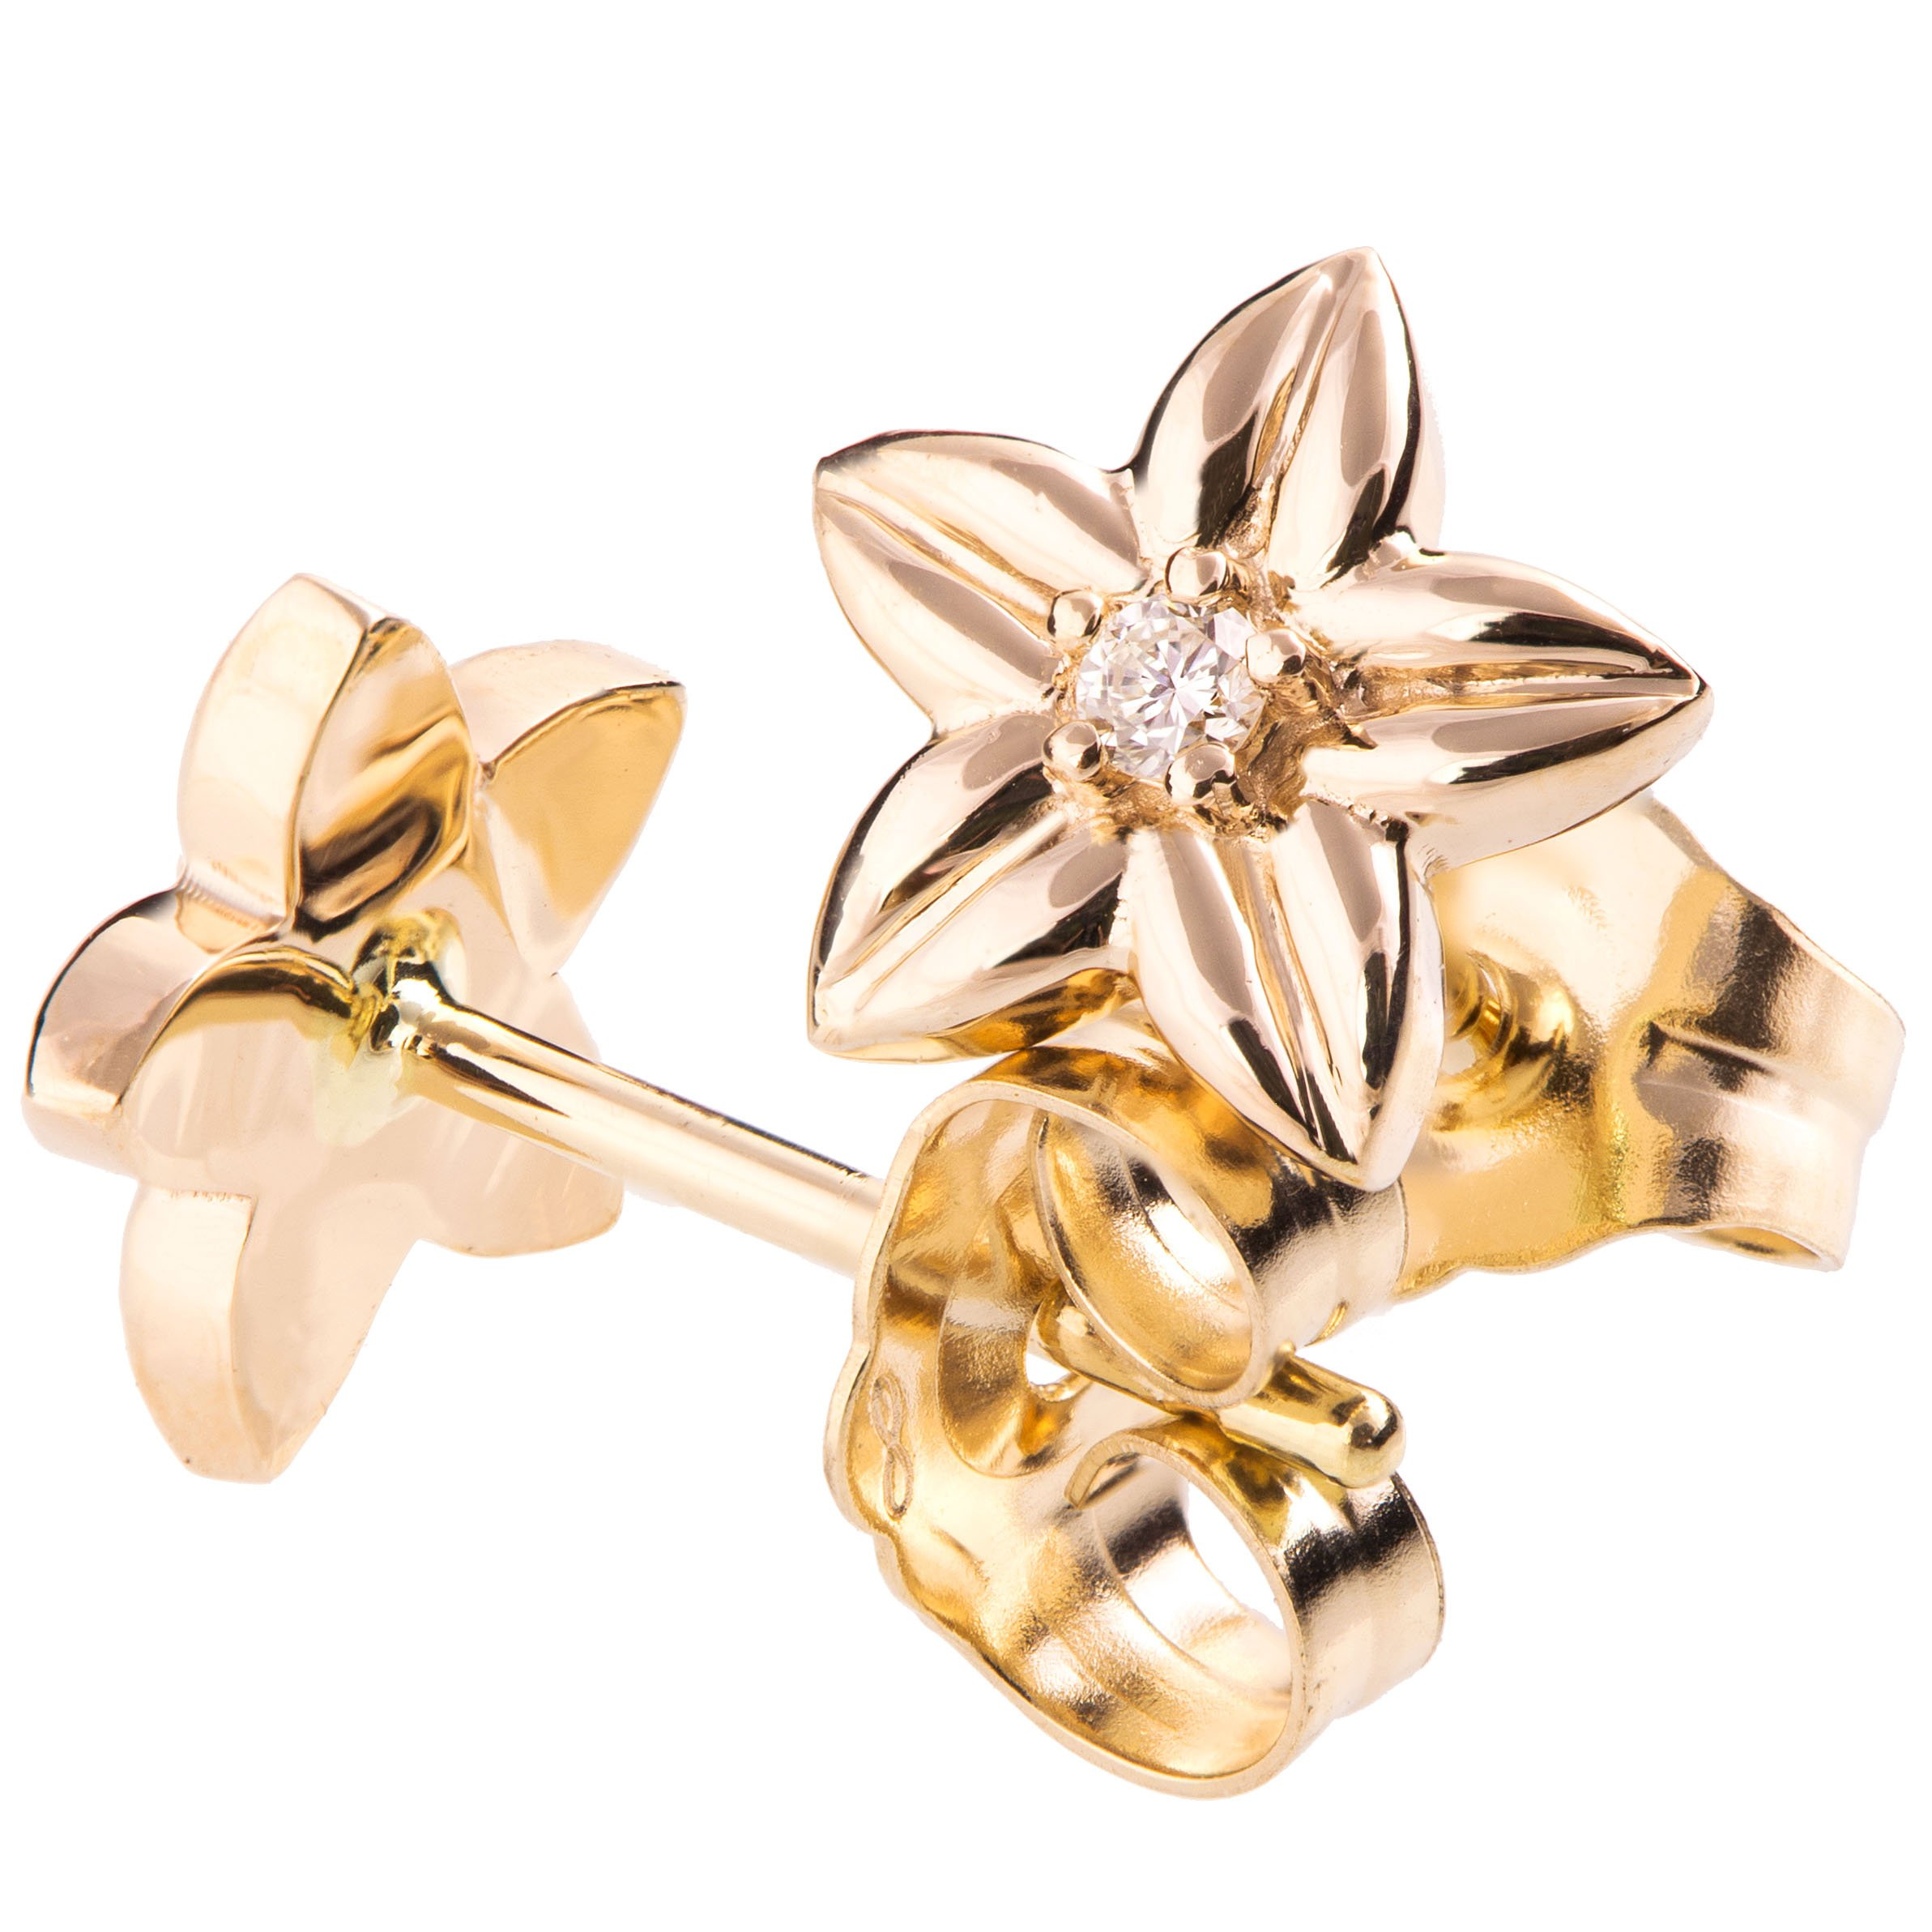 14K Solid Yellow Gold and Diamond Flower Earrings For Women Floral Post Rose Studs Gift